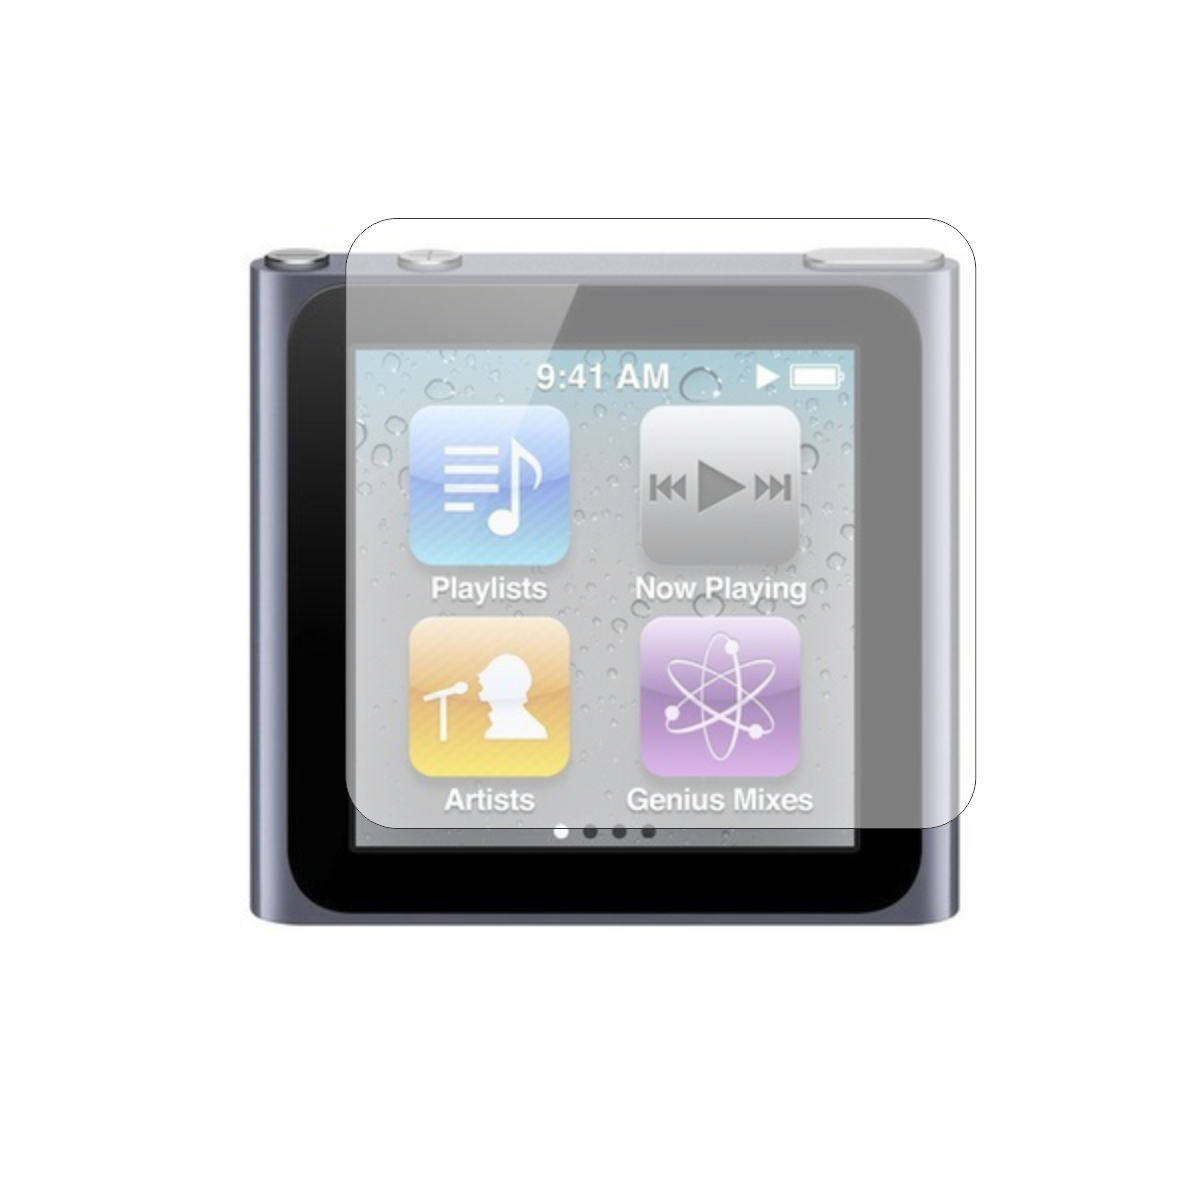 Folie de protectie Smart Protection iPod nano 6th gen - 4buc x folie display imagine